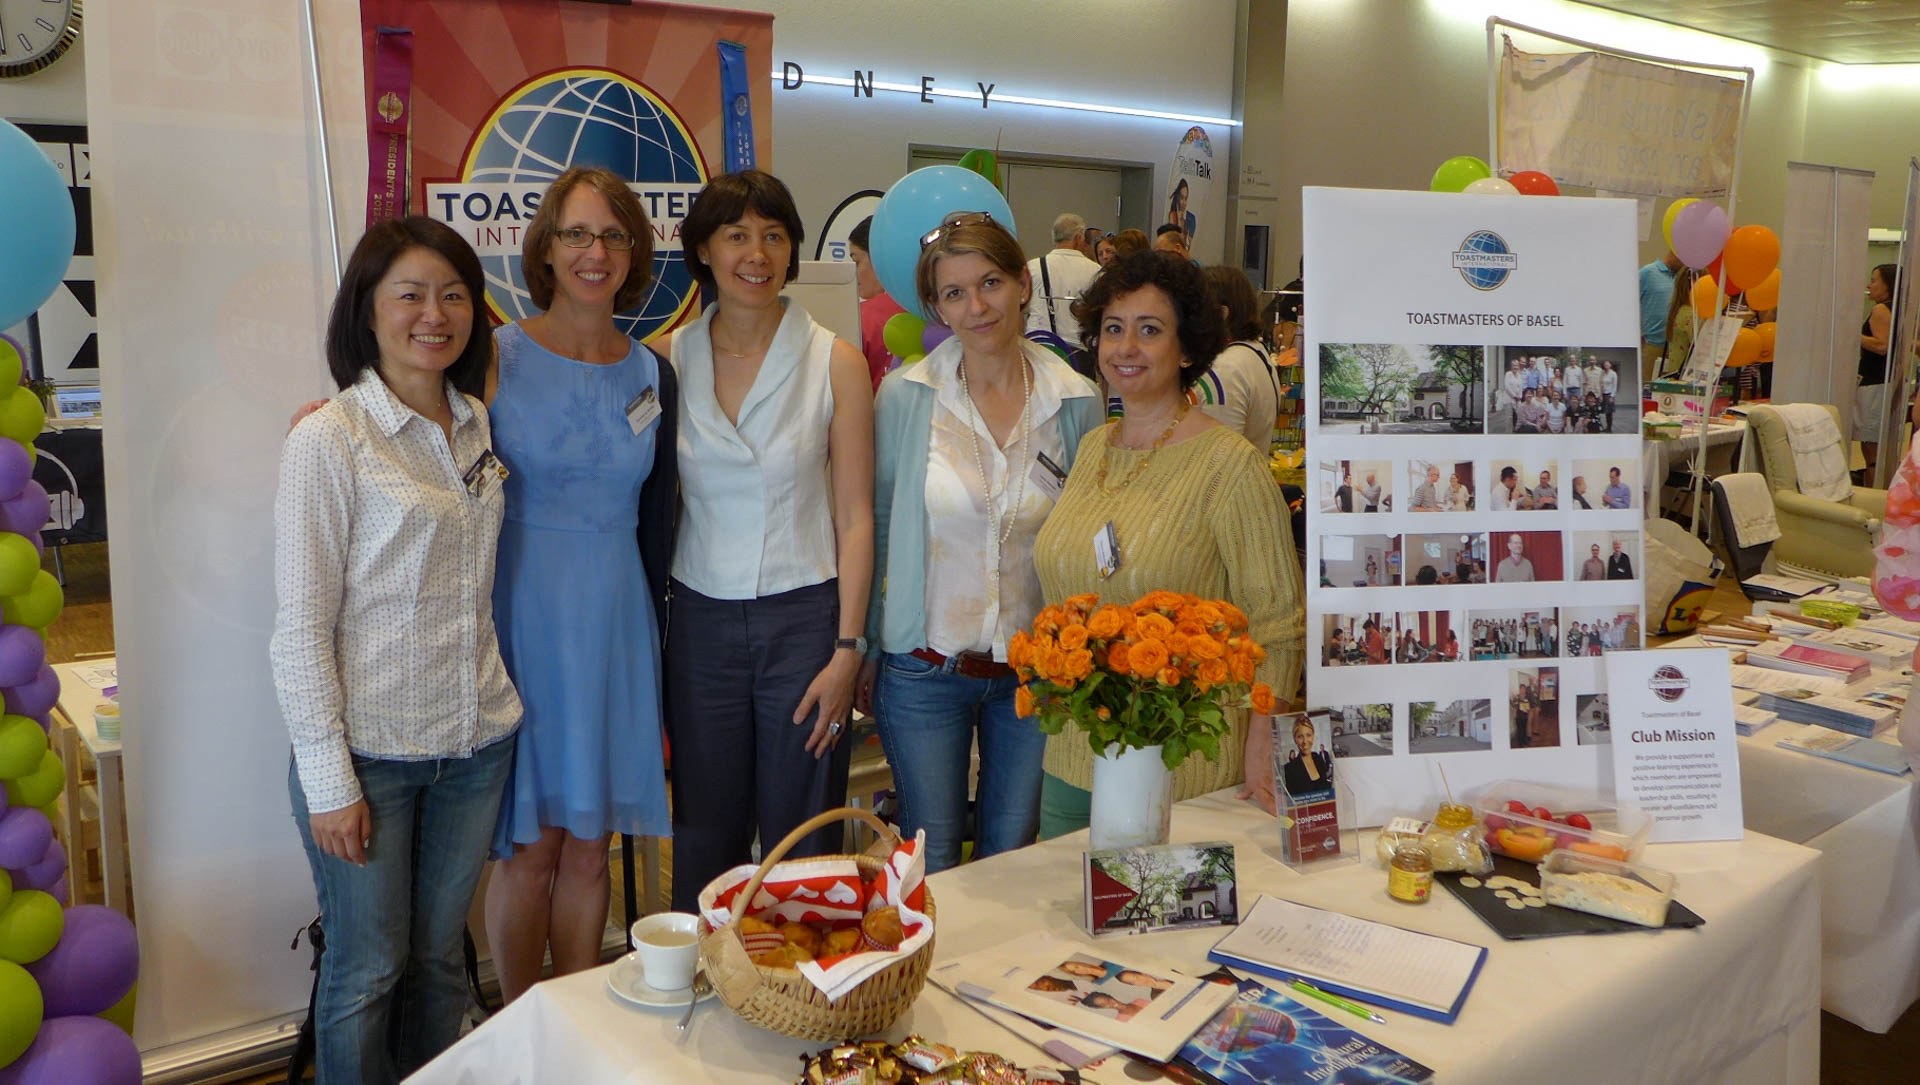 Toastmasters of Basel at the Expat Expo 2015